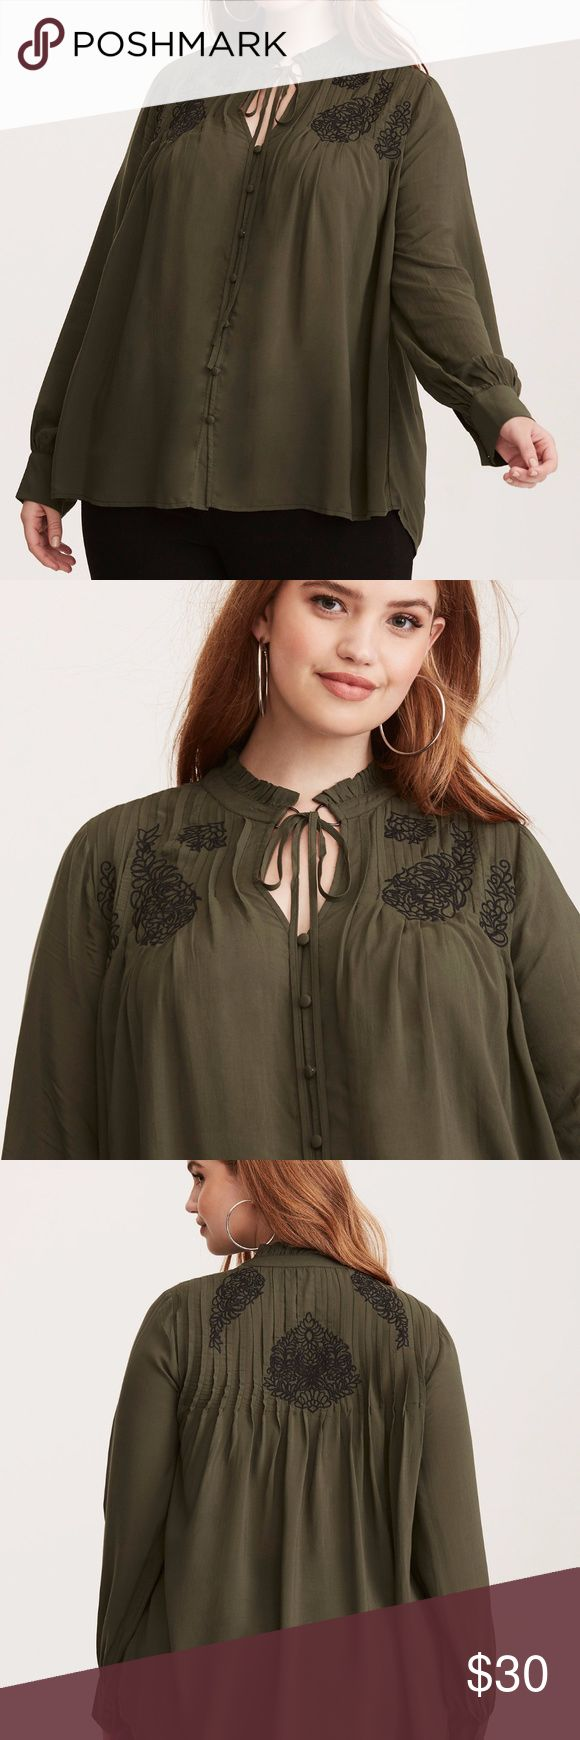 Torrid Embroidered Challis Tie Front Blouse Olive Torrid embroidered challis tie front blouse in olive, size 1 (1X - 14/16)-but this is generously sized.  As seen on a 2X dress form.  Worn once, hand washed in cold & hung to dry.  This blouse is simply too good to pass up. The rich olive green challis has a silky feel and a swingy fit helped along by a peasant silhouette and sleeves. The button front lends a polished touch, along with a tie neck. The black floral embroidery is the definition…